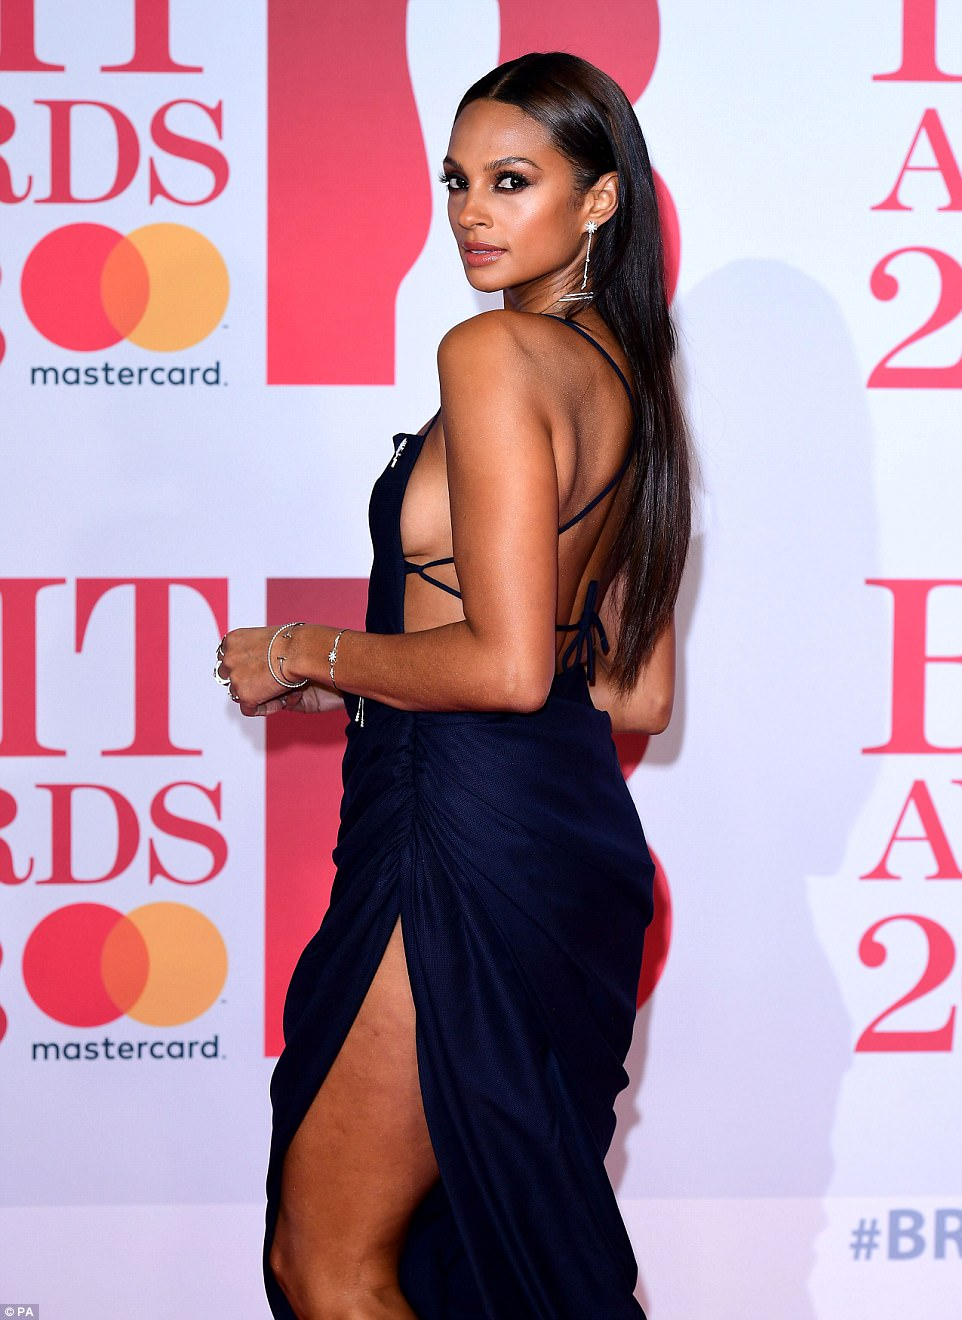 Flawless: The singer, 39, flashed some serious sideboob in a navy ruched dress with a thigh high split, as she arrived for the ceremony with her dapper other half